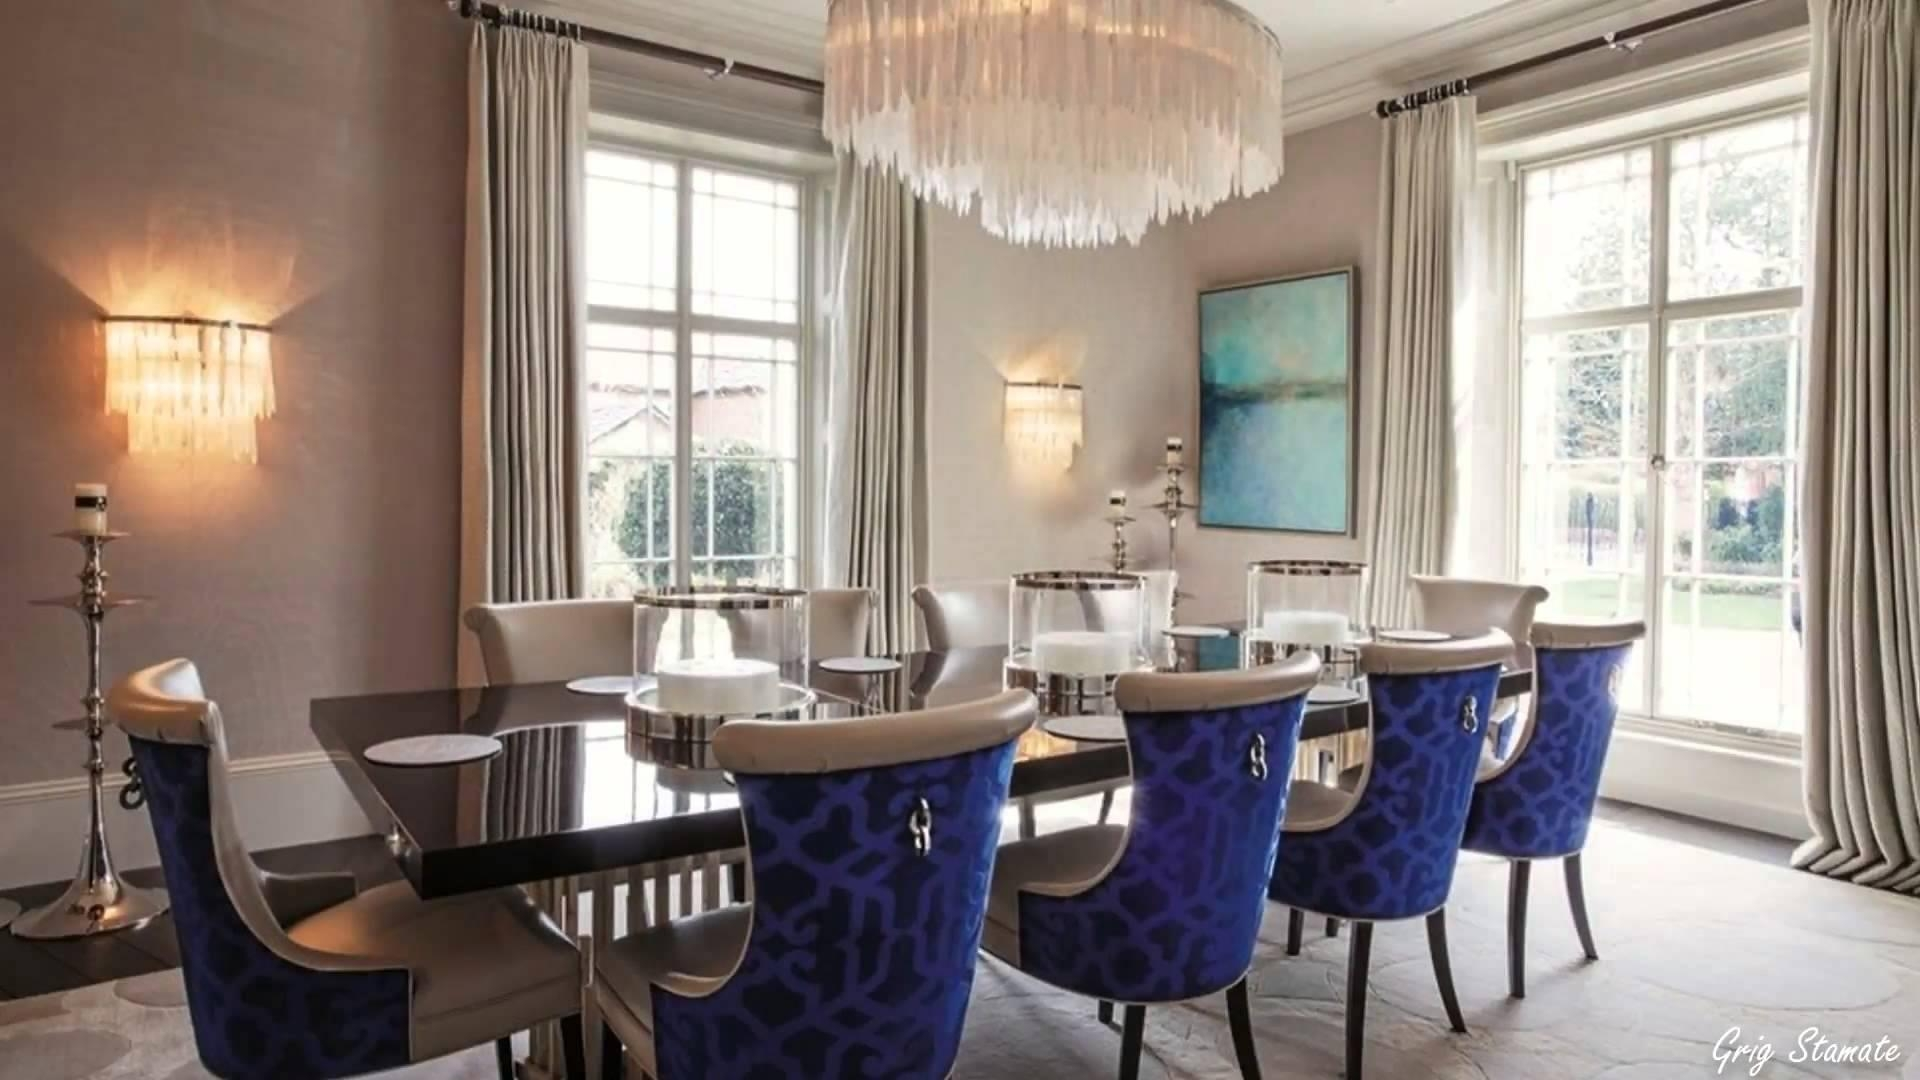 Dining Room Wall Art Ideas – Home Interior Design Ideas Regarding Formal Dining Room Wall Art (View 19 of 20)